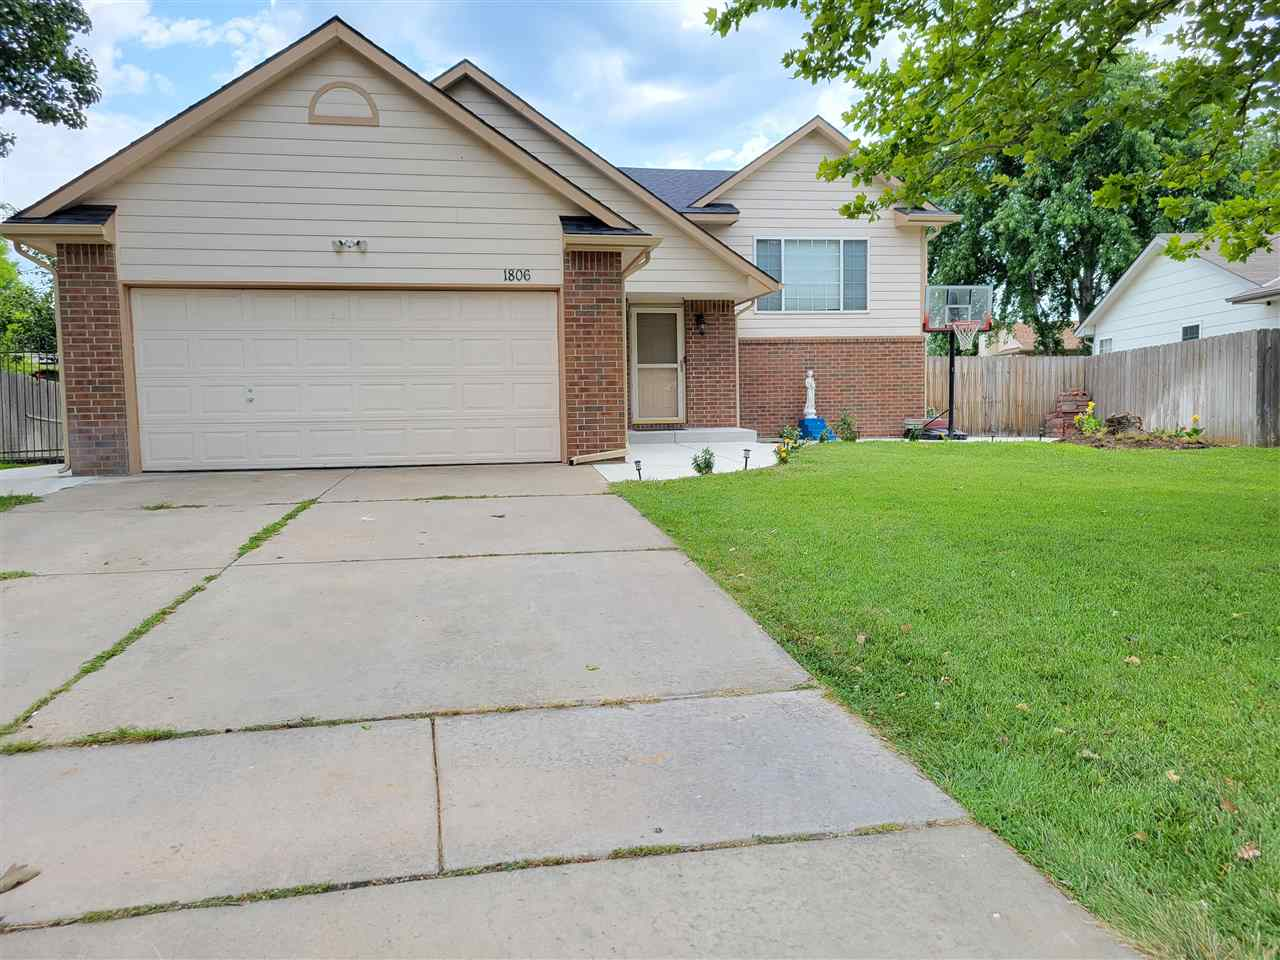 Great bi-level home features 5 bedrooms, 3 bath, 2 car garage, huge sunroom & family/rec room, fully fenced-in yard. New concrete poured around the house,  flooring , interior, and exterior paint.  Lots of fruit trees.